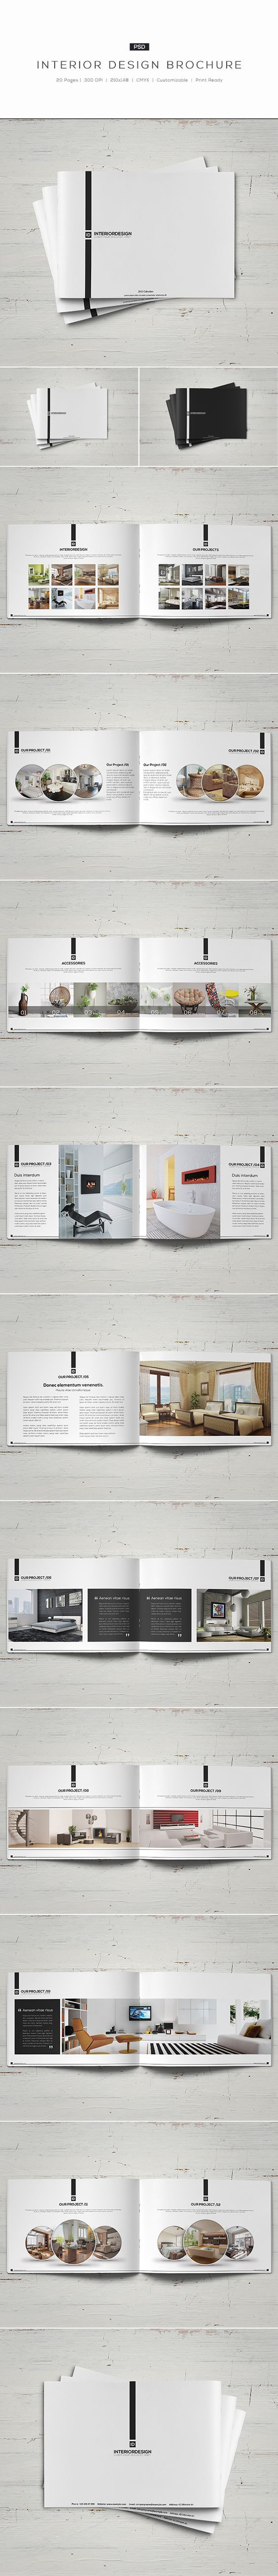 Interior Design Brochure on Behance: